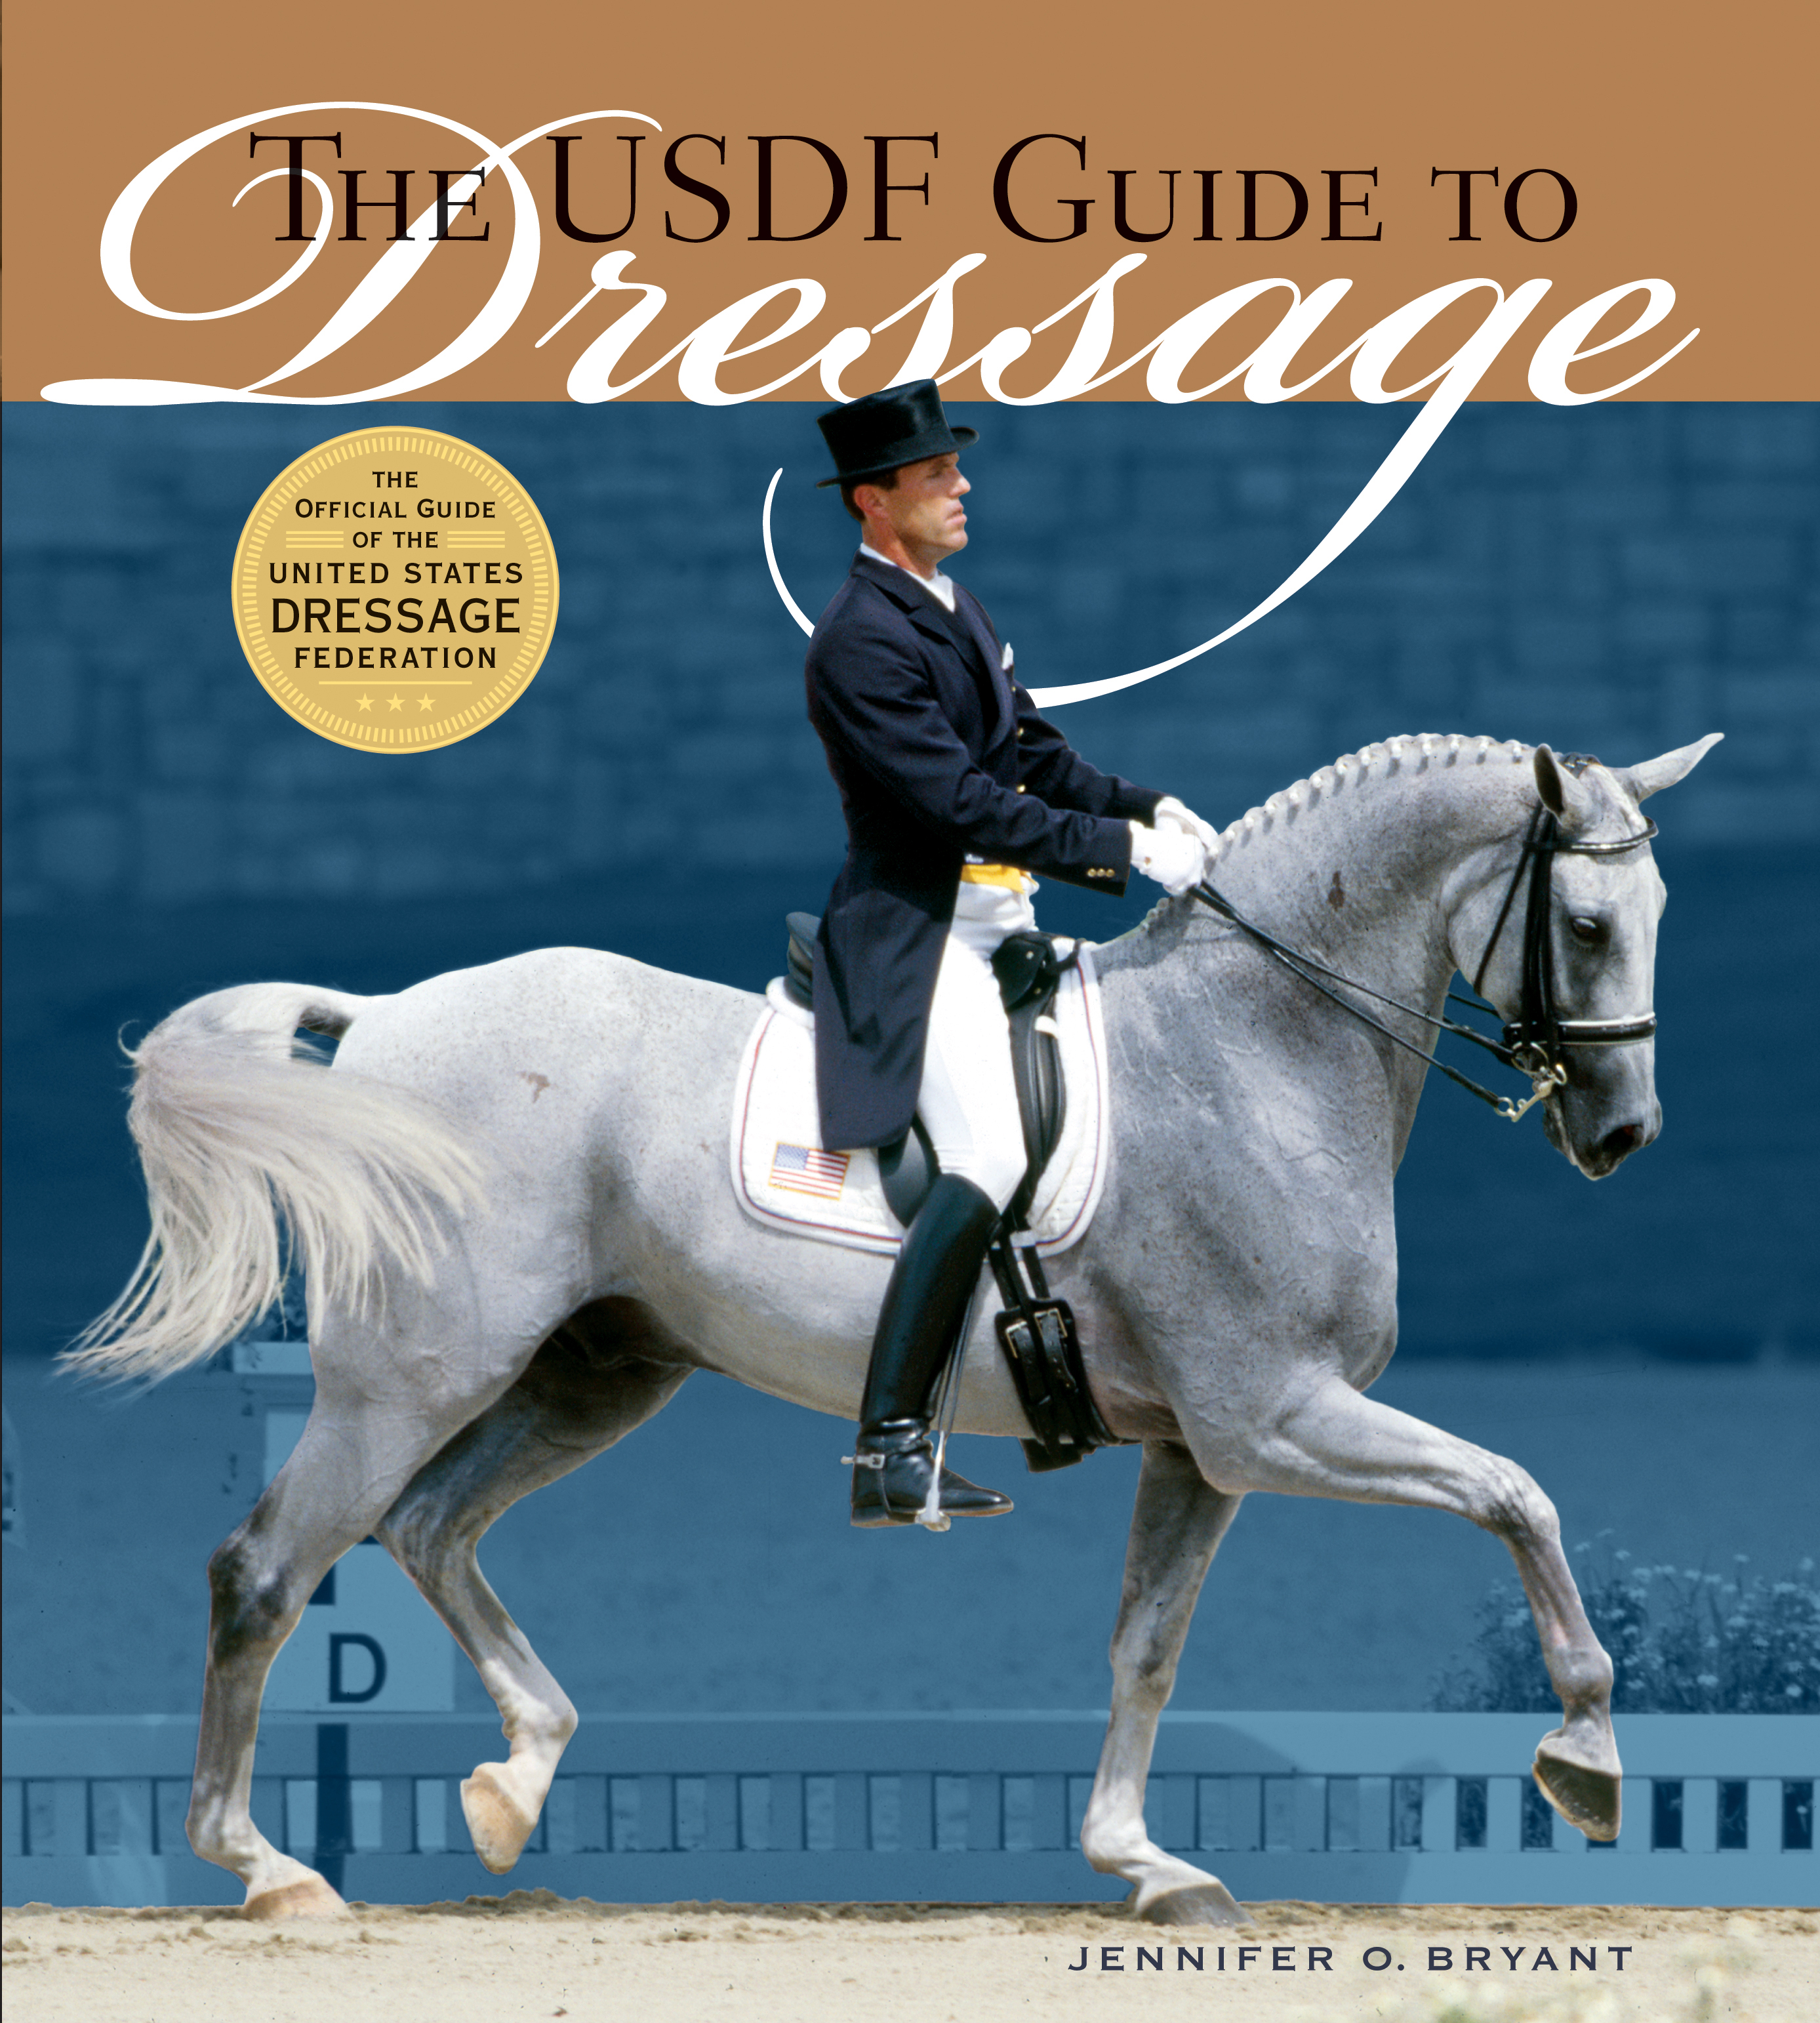 The USDF Guide to Dressage The Official Guide of the United States Dressage Foundation - Jennifer O. Bryant